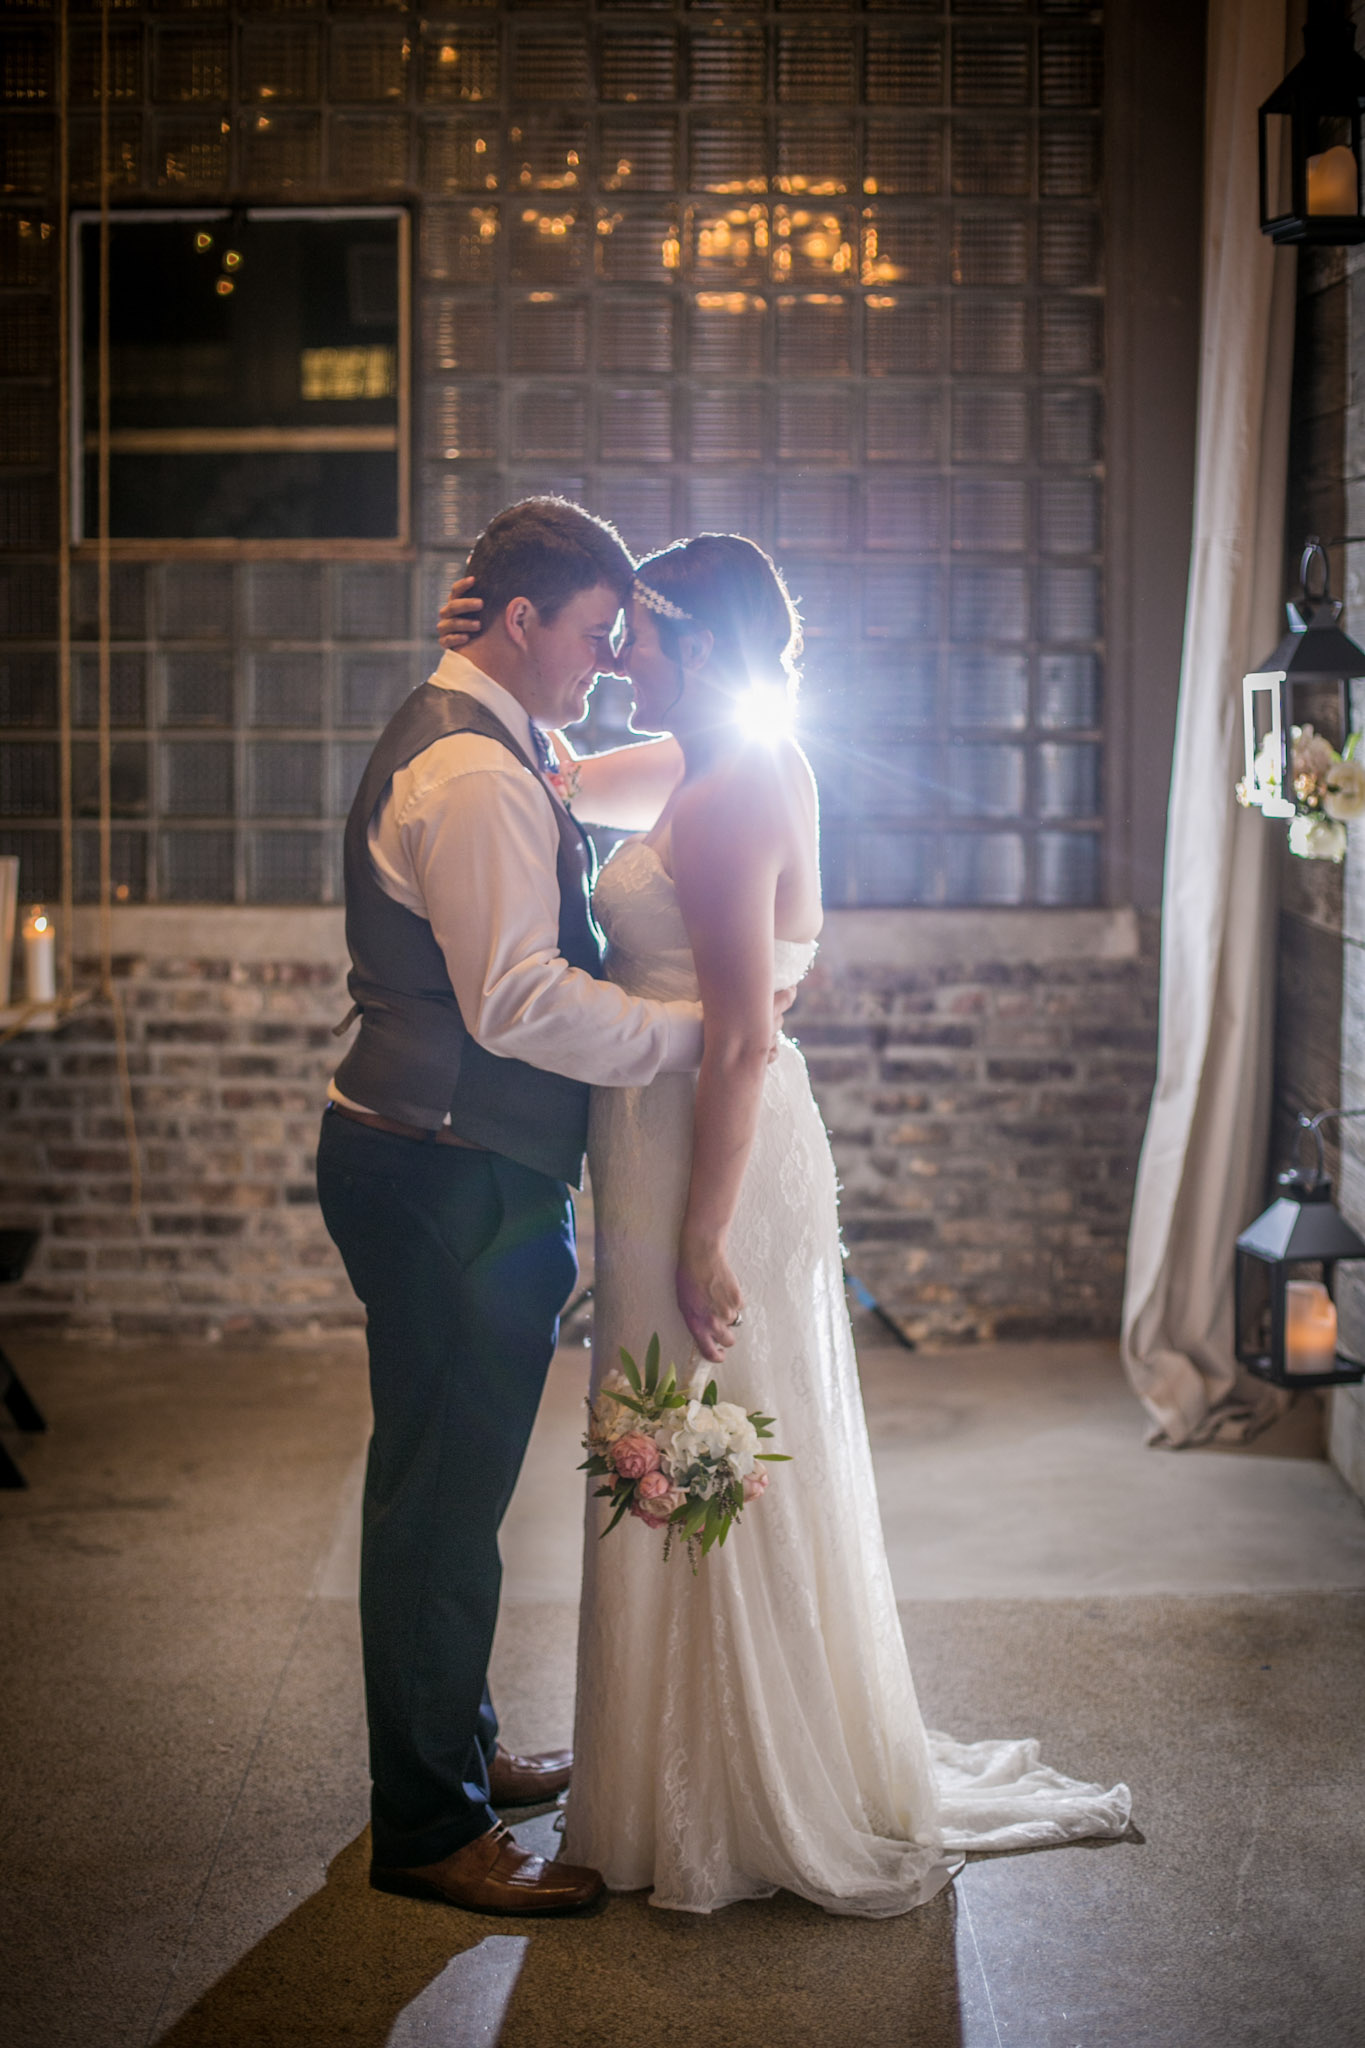 Kansas_City_Small_Wedding_Venue_Elope_Intimate_Ceremony_Budget_AffordableAshleigh&Zachary-240.jpg